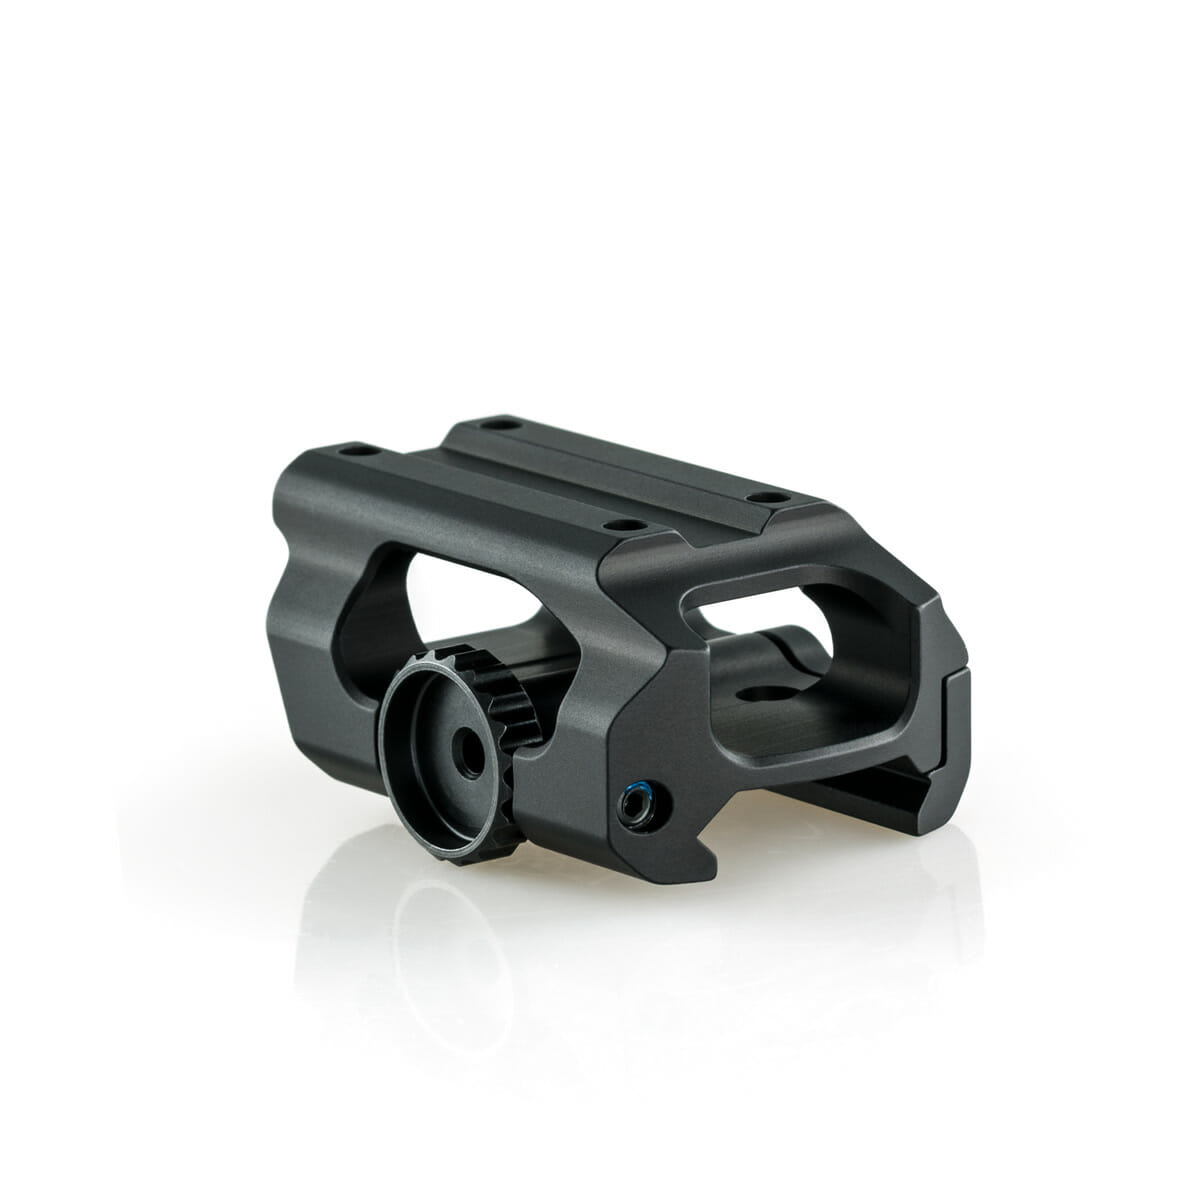 Scalarworks_SW0500_trijicon_mro_mount_hero